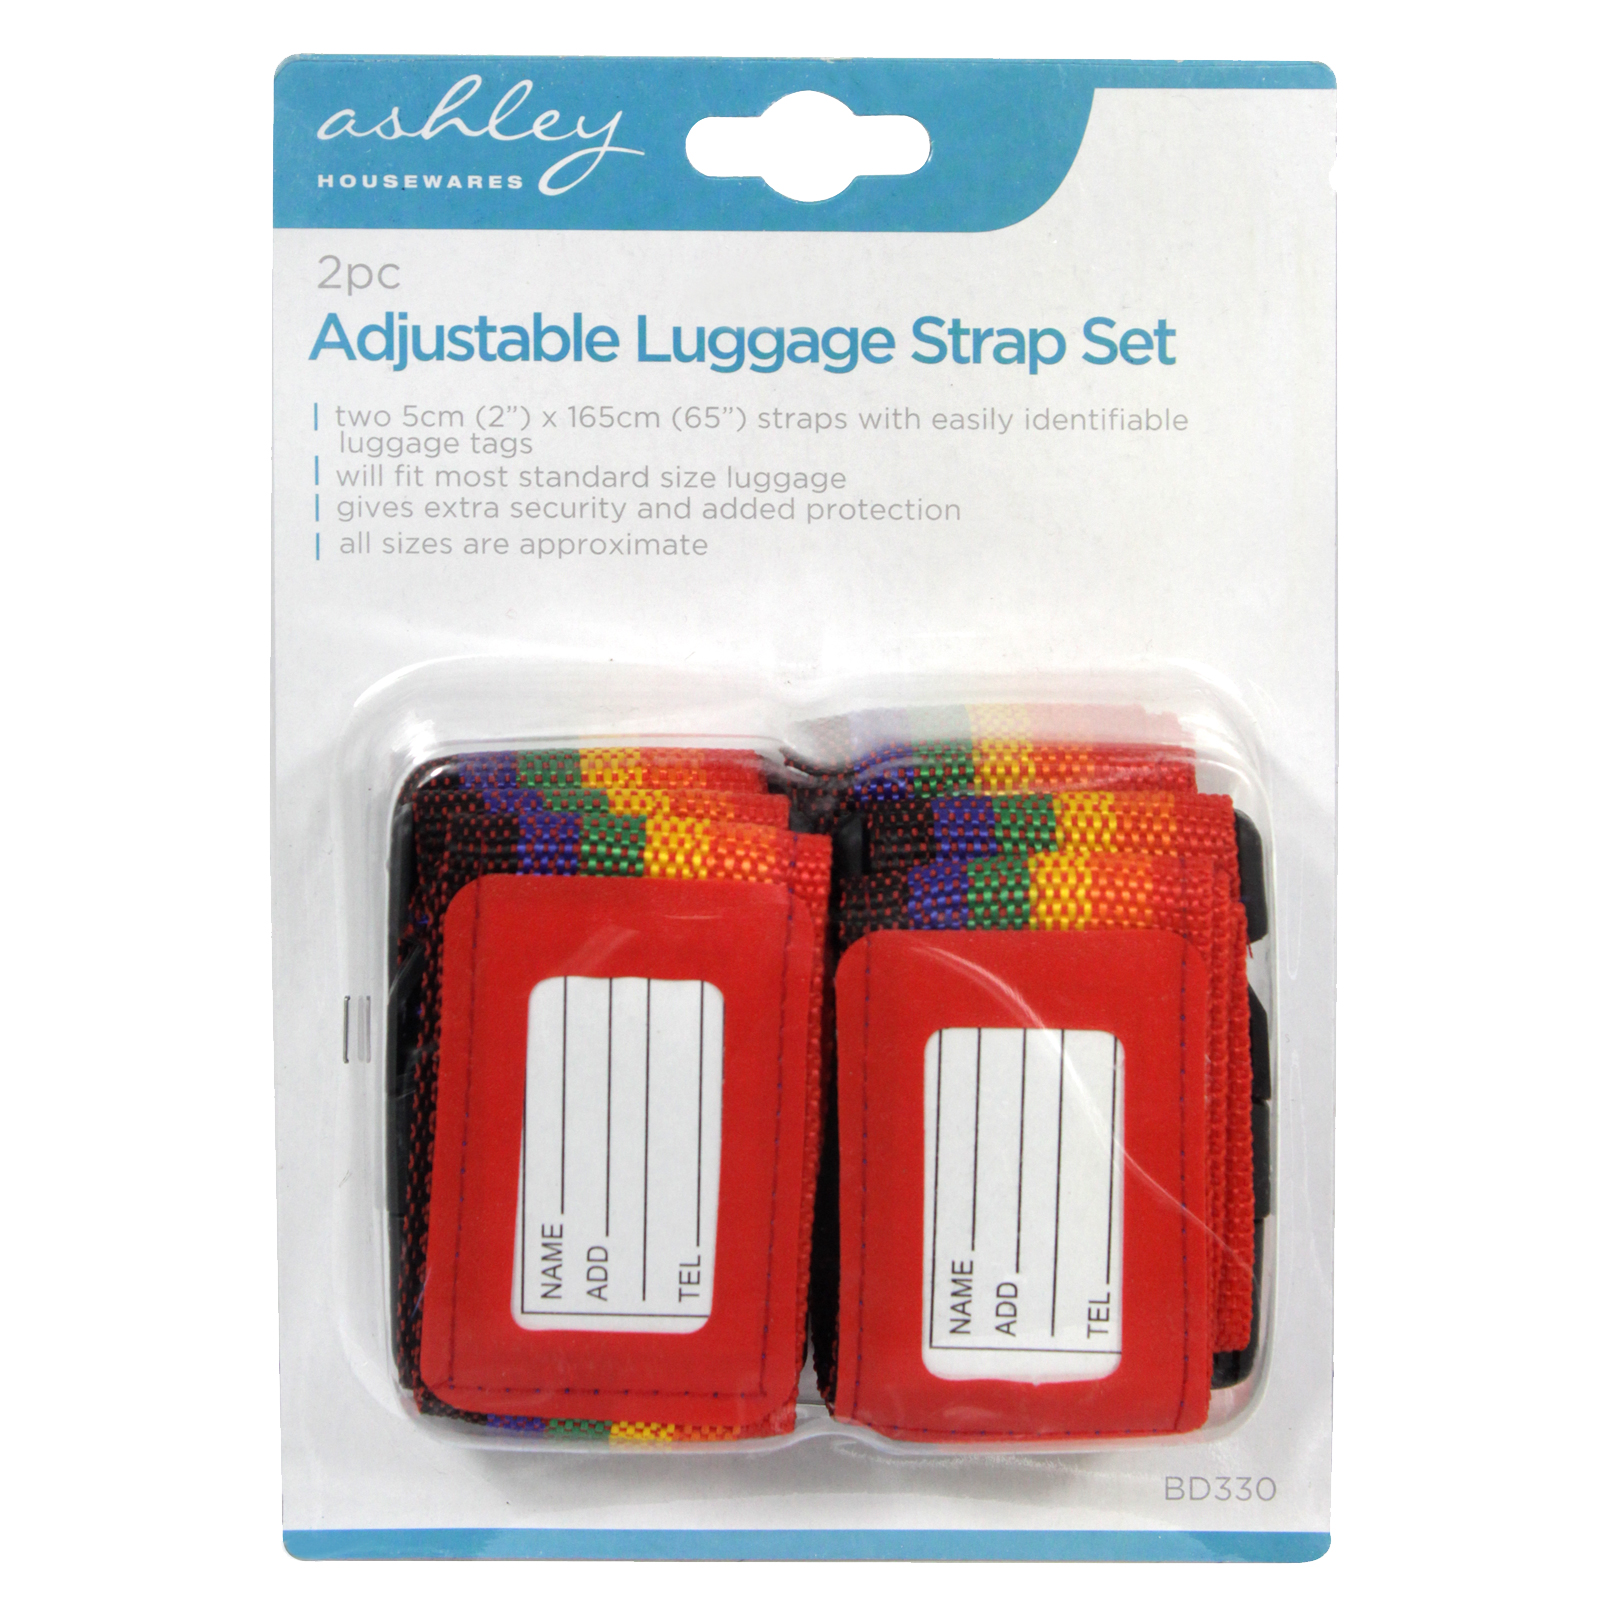 BLACKSPUR 2PC ADJUST LUGGAGE STRAPS